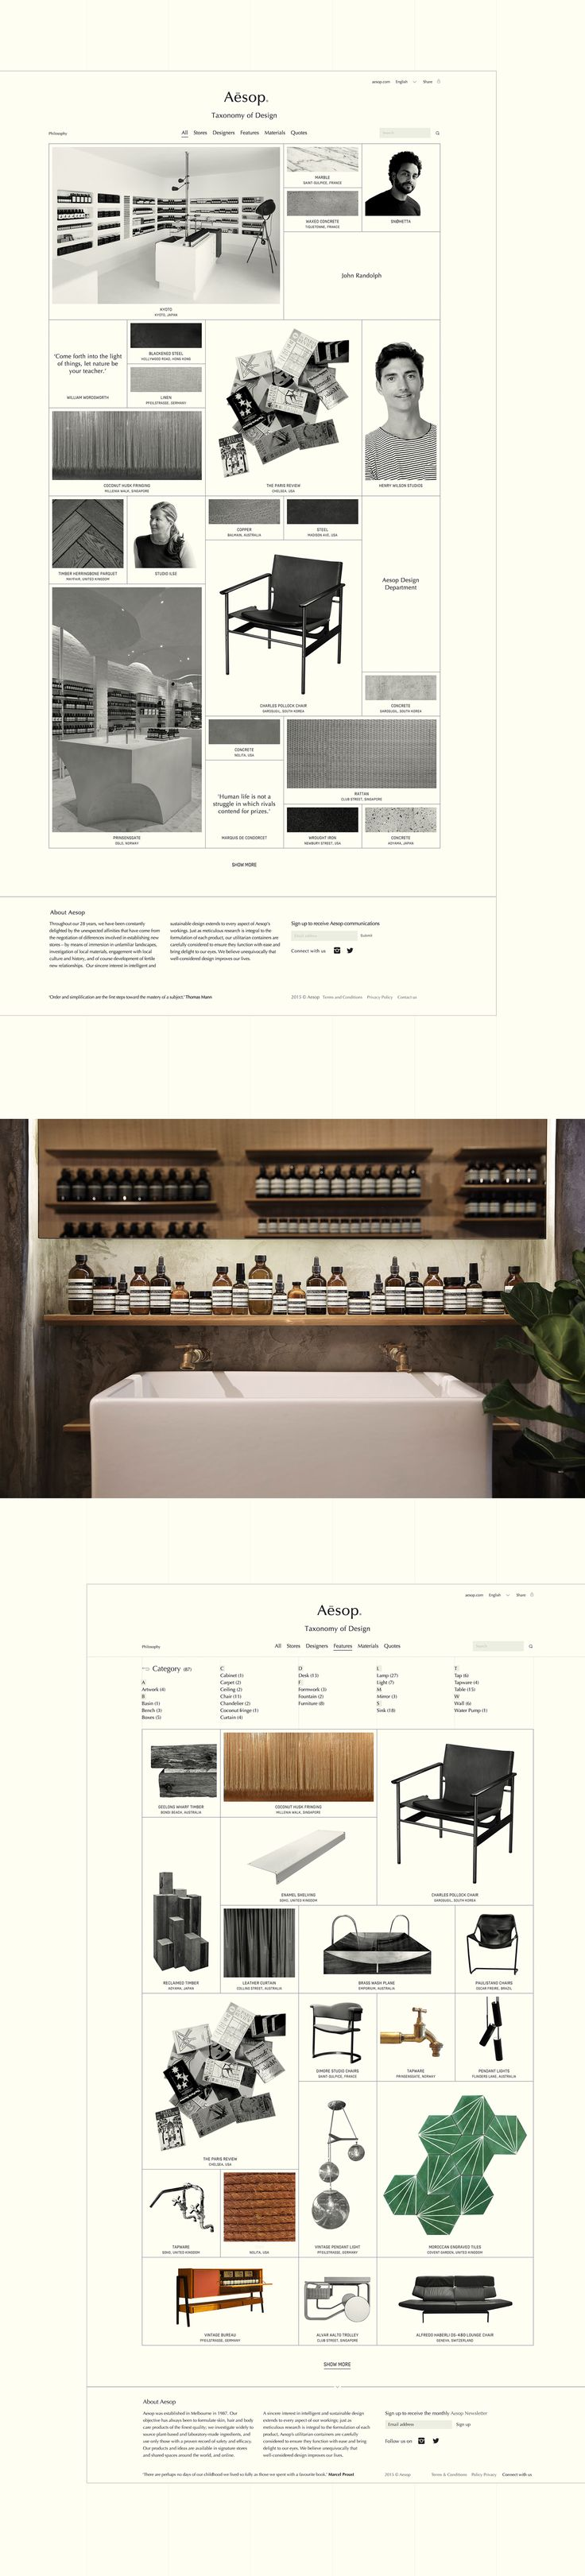 Aēsop Taxonomy of Design on Behance